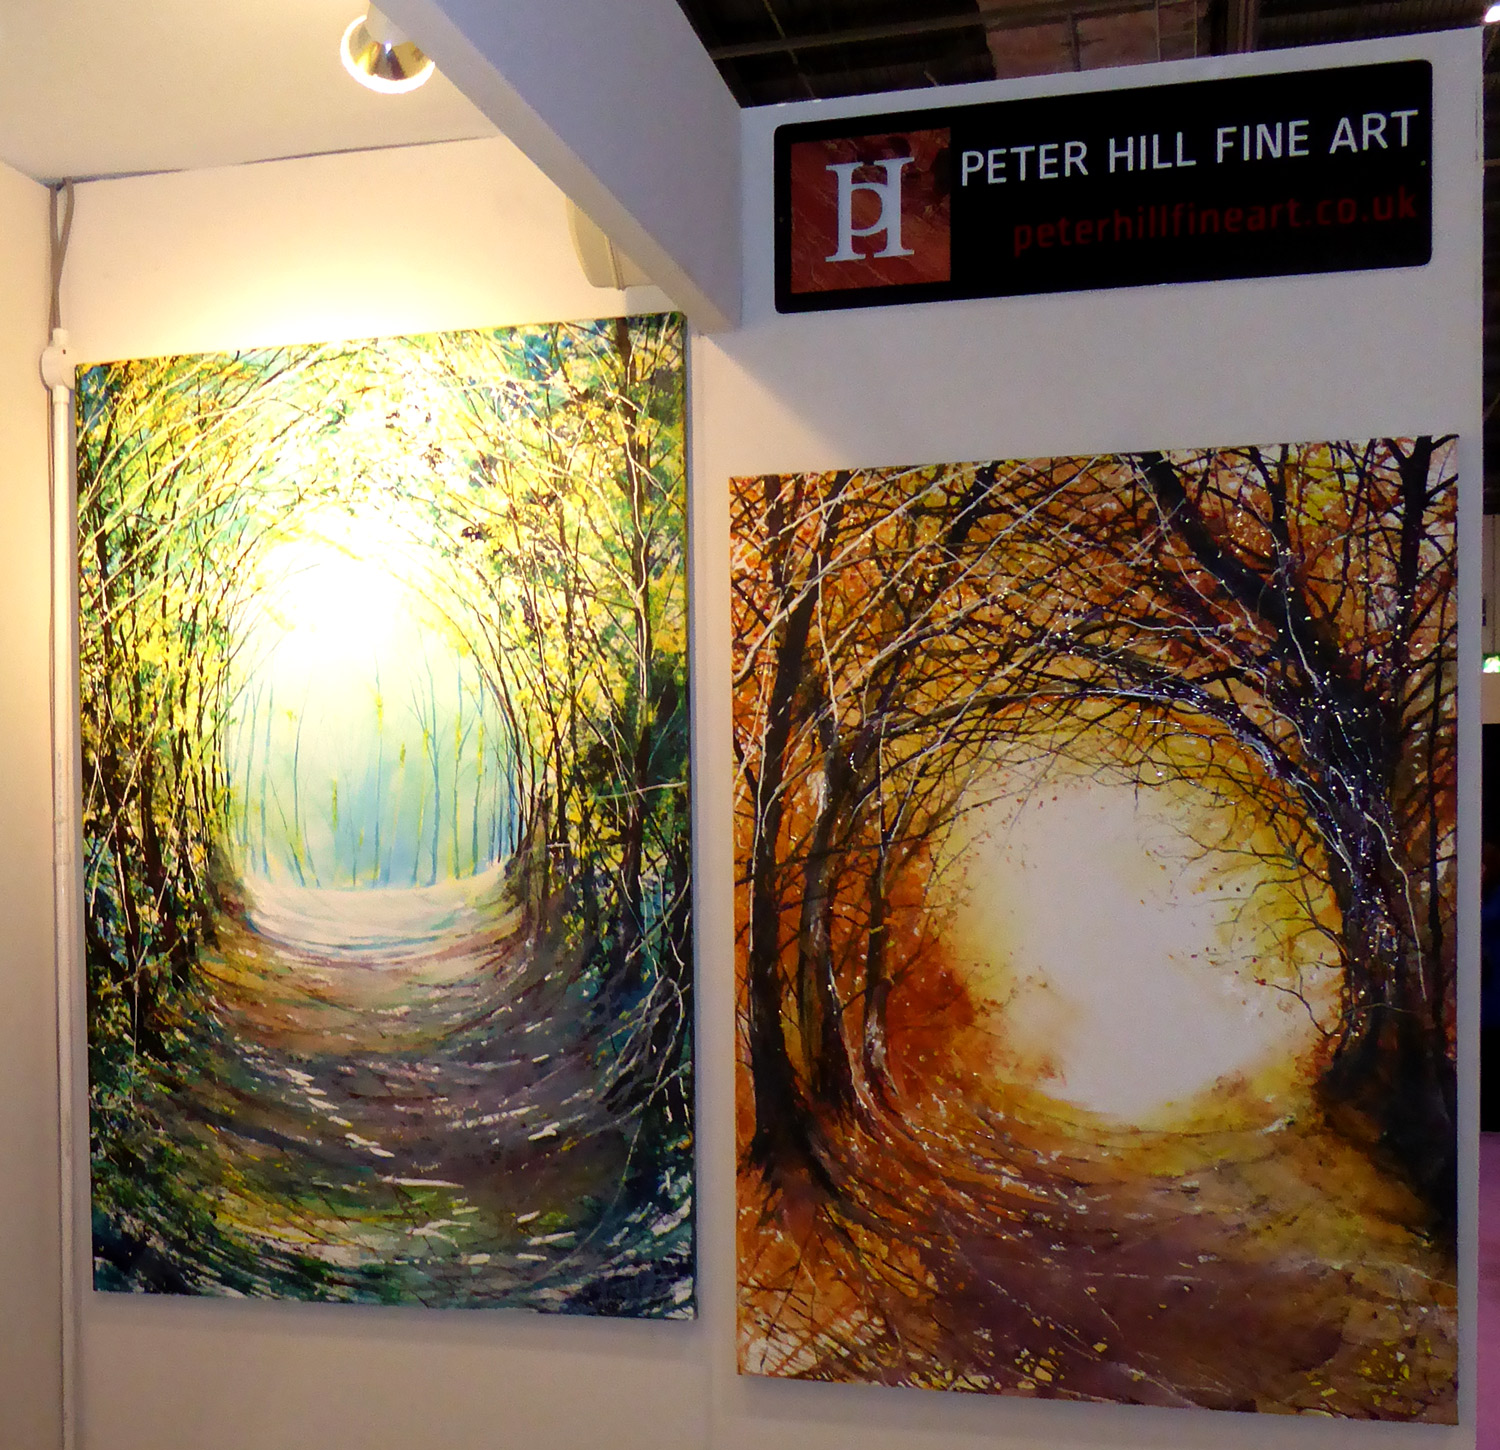 Peter Hill Fine Art Stand at Grand Designs Live 2014